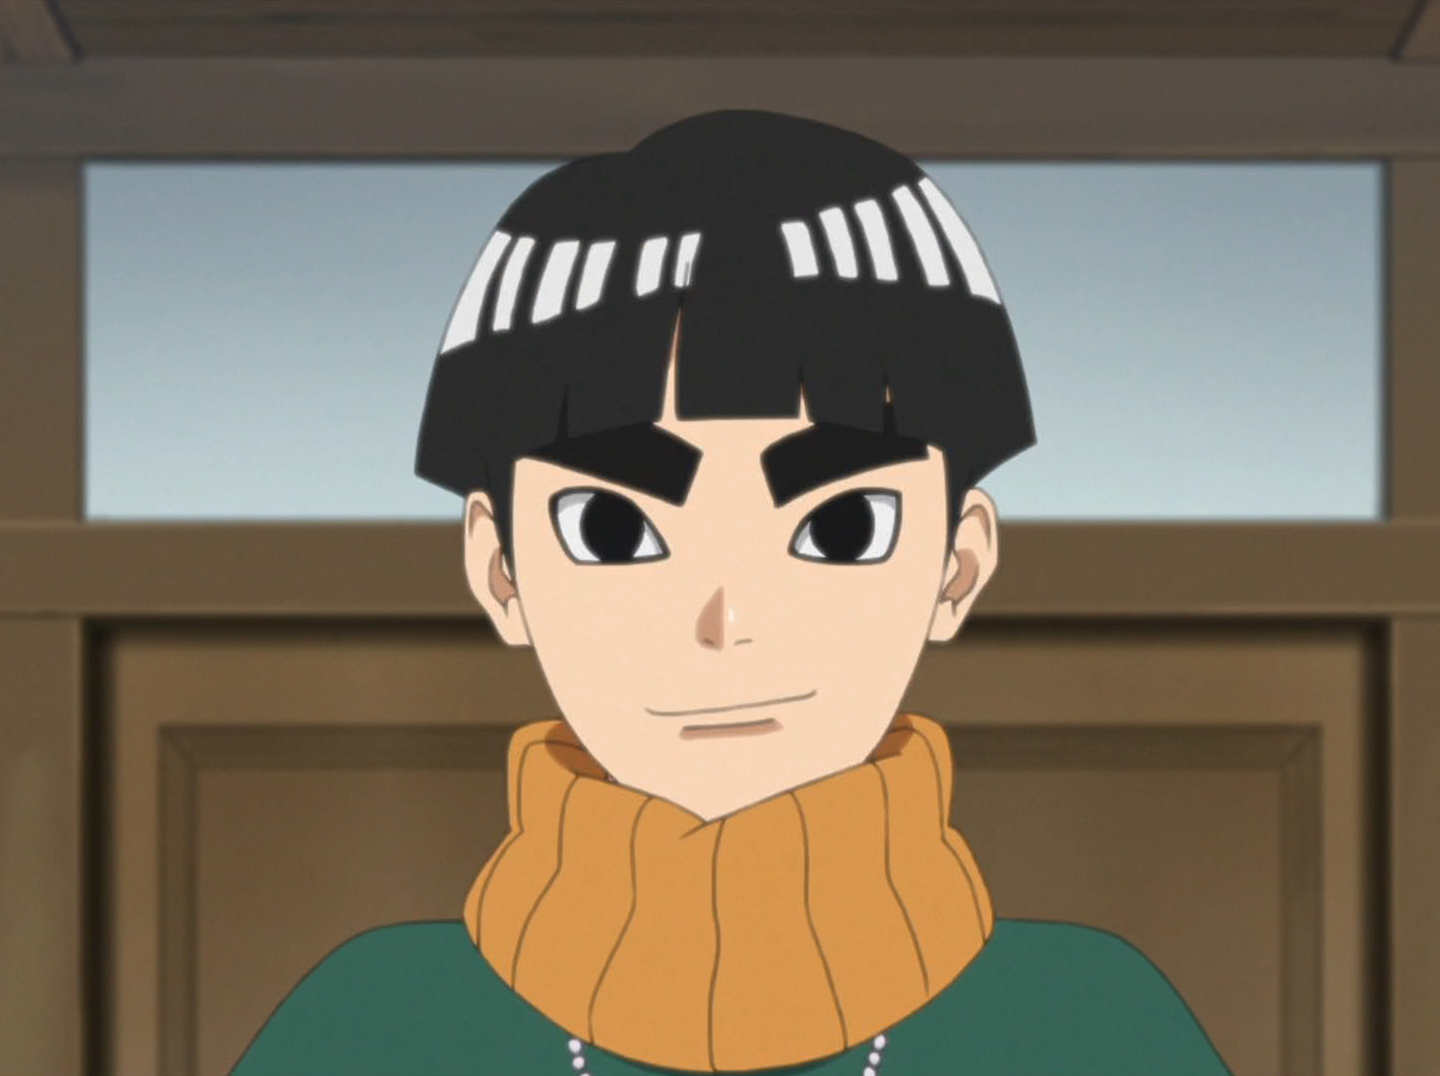 Metal Lee | Narutopedia | FANDOM powered by Wikia